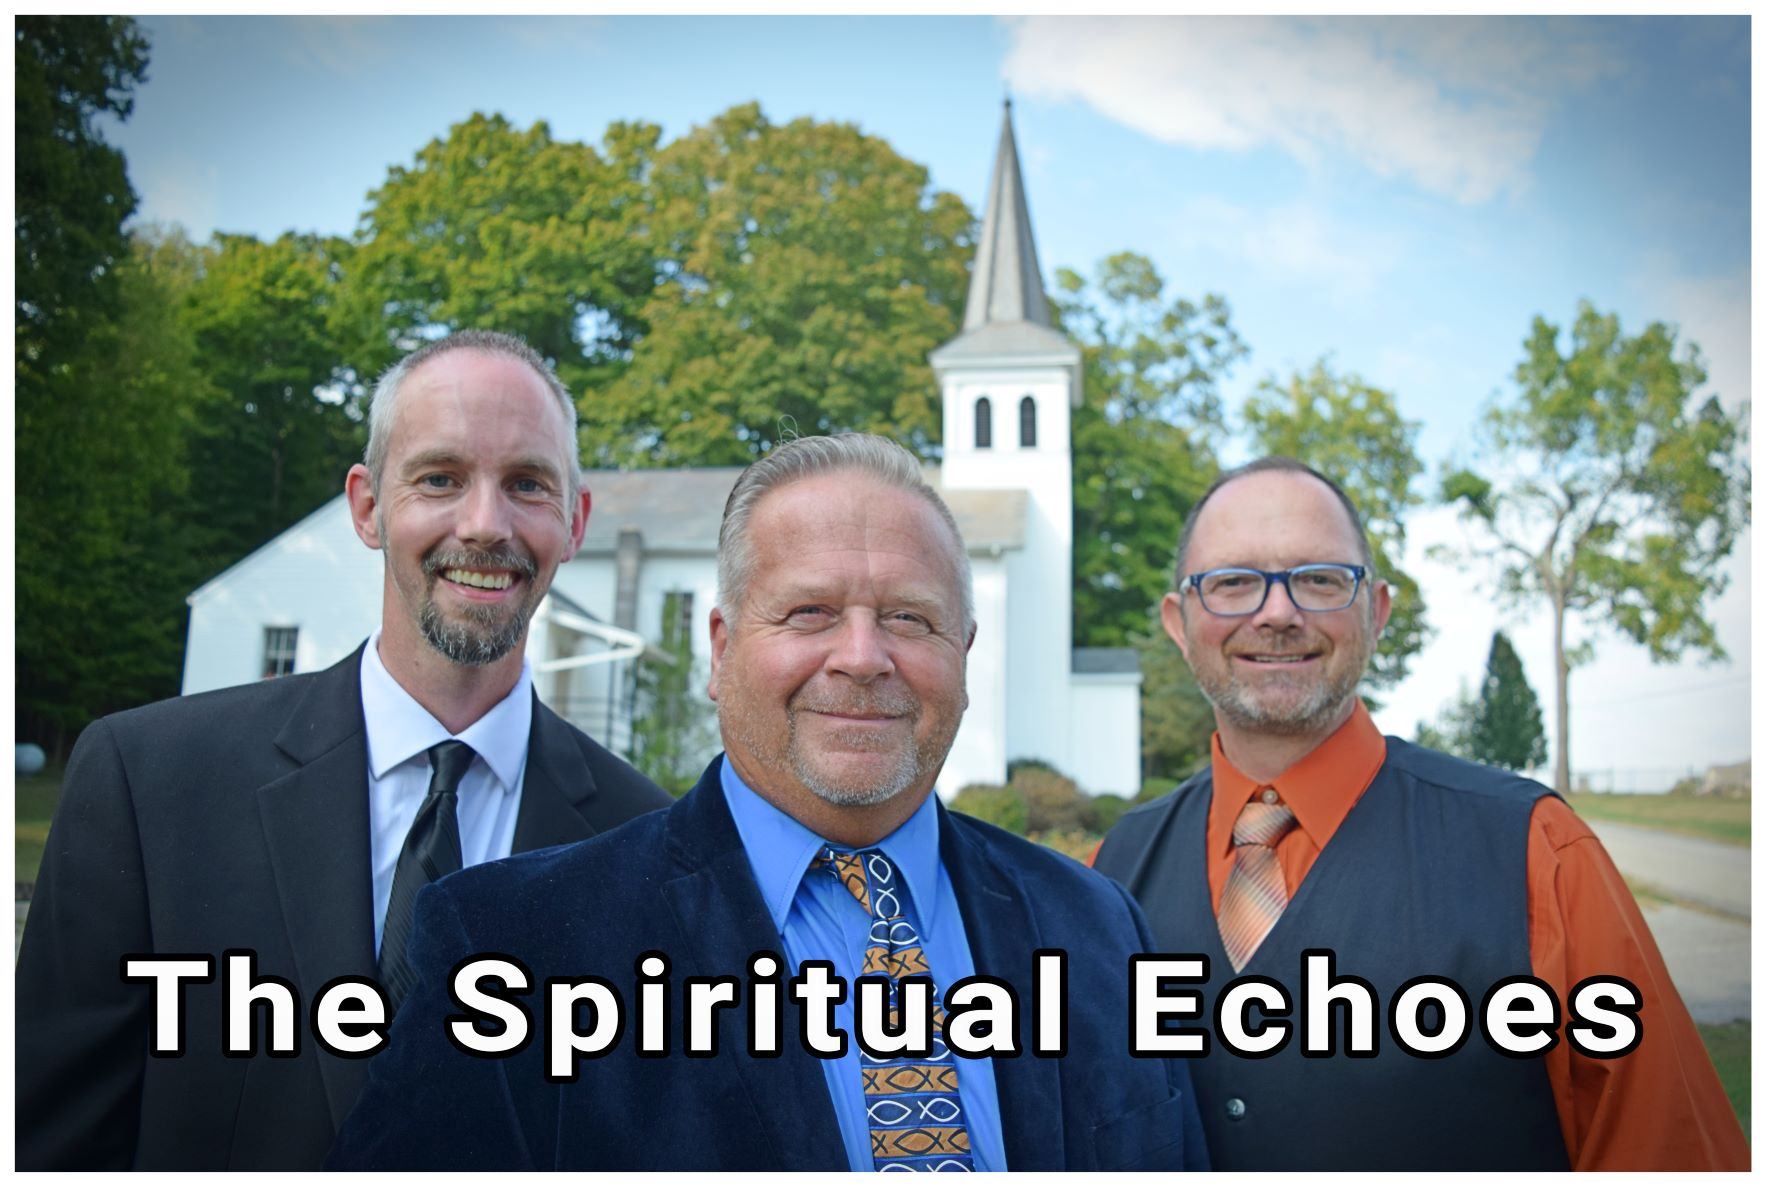 The Spiritual Echoes